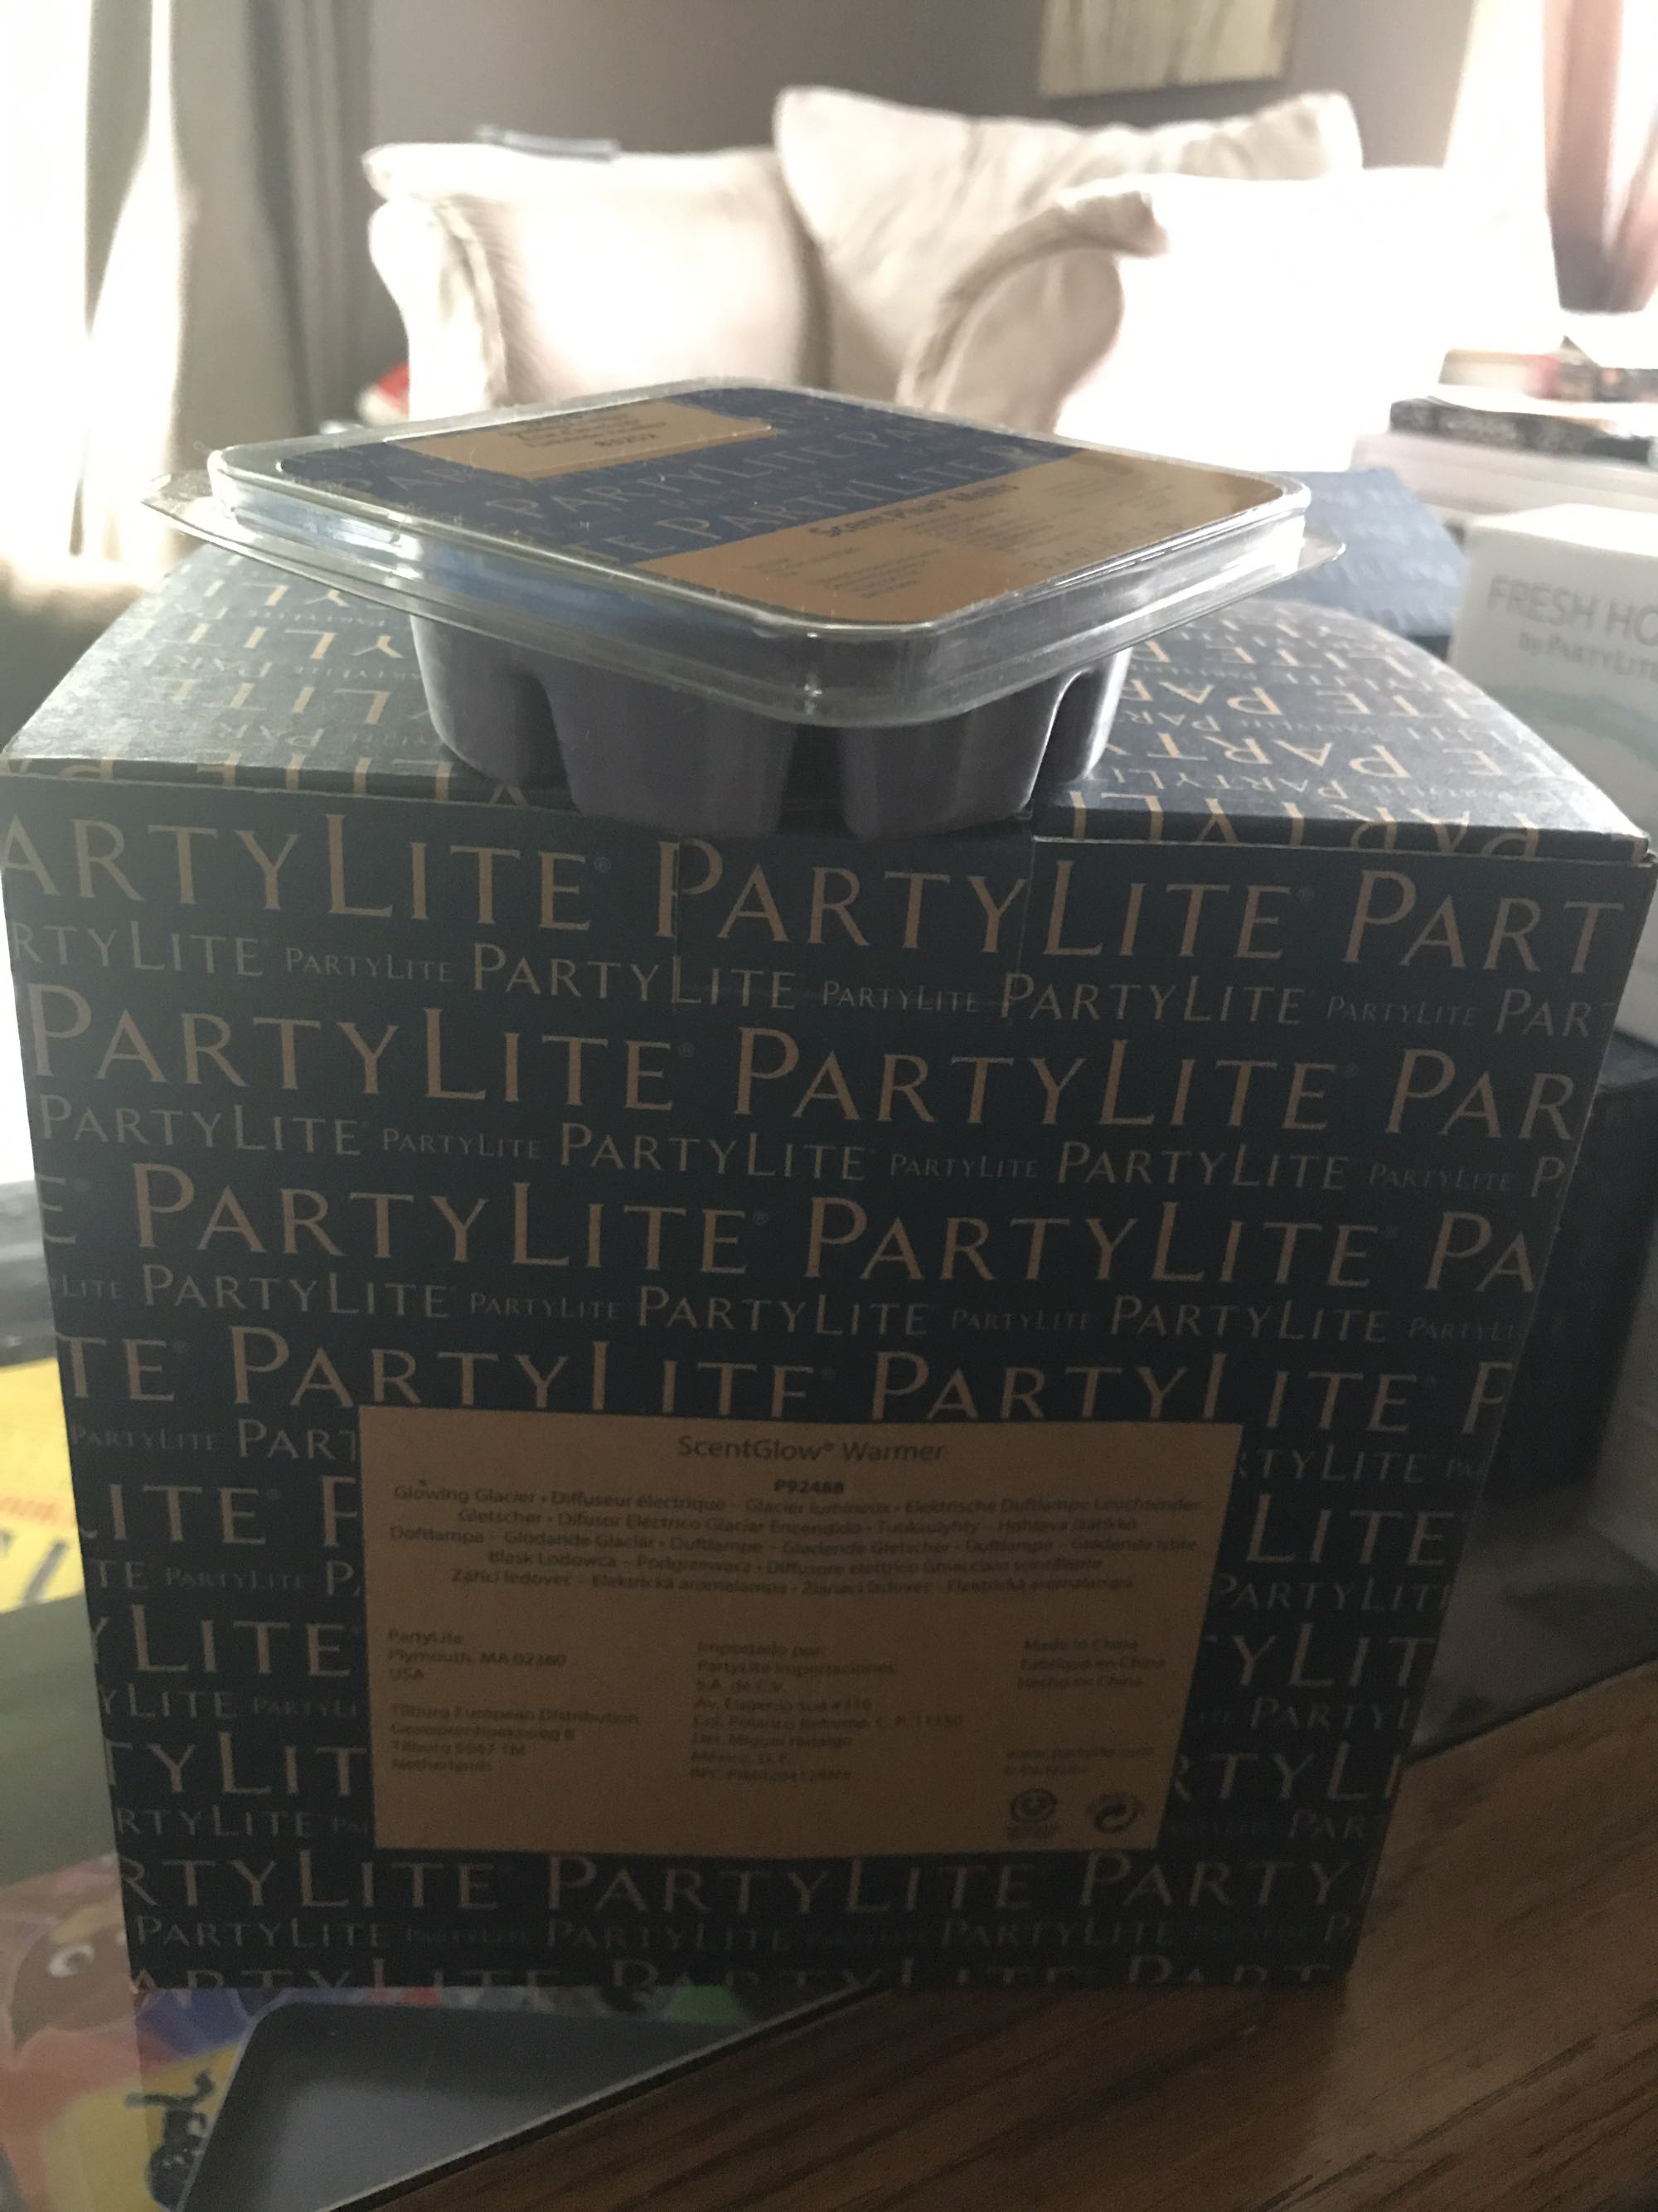 Brand new Partylite warmer with wax melts